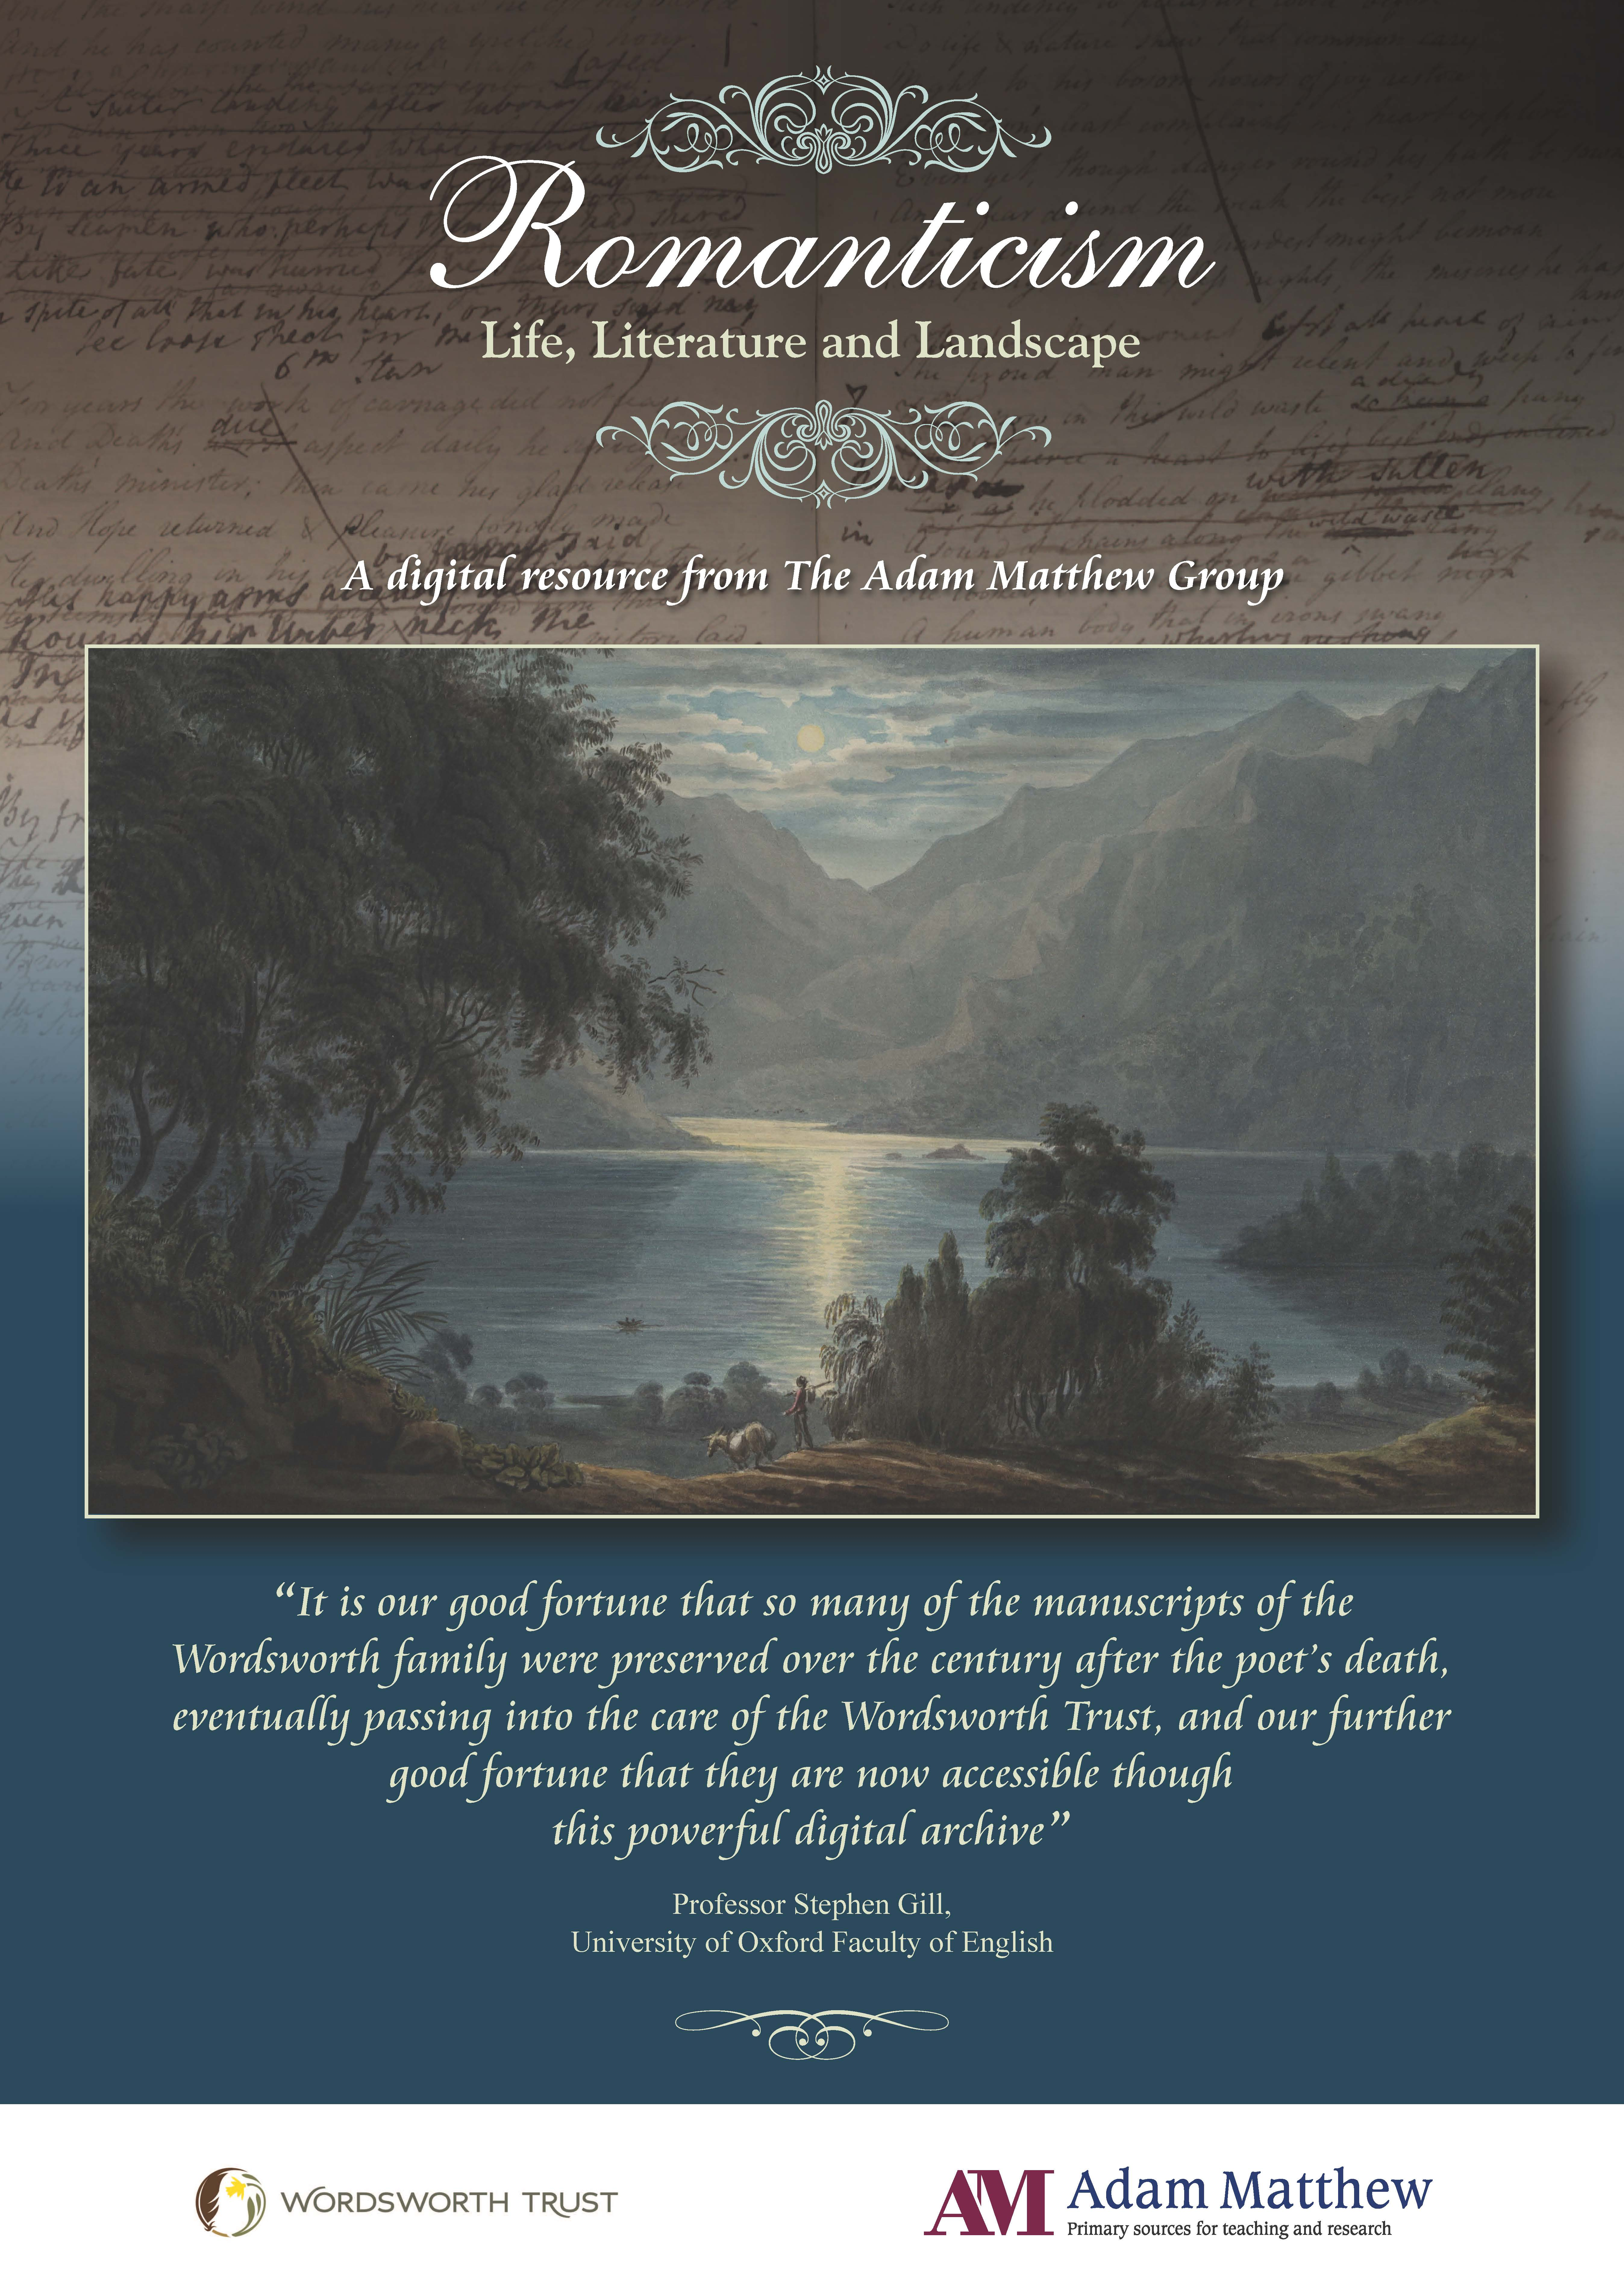 Poster of Scottish Loch in moonlight with mountains in the background